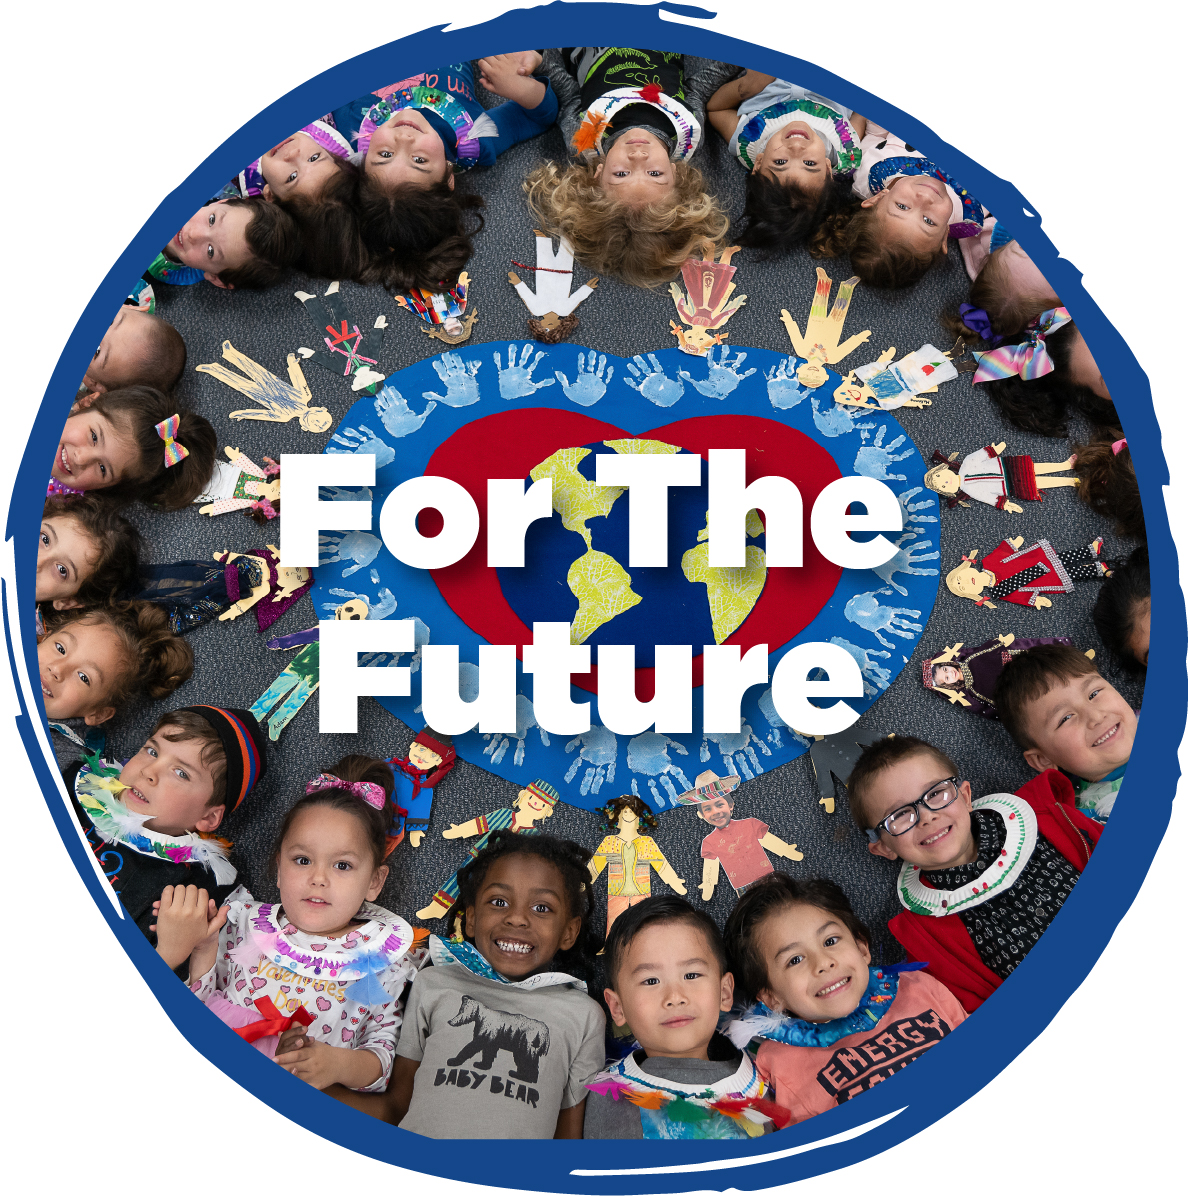 """""""Room for the Future - Circle of young children around a heart"""